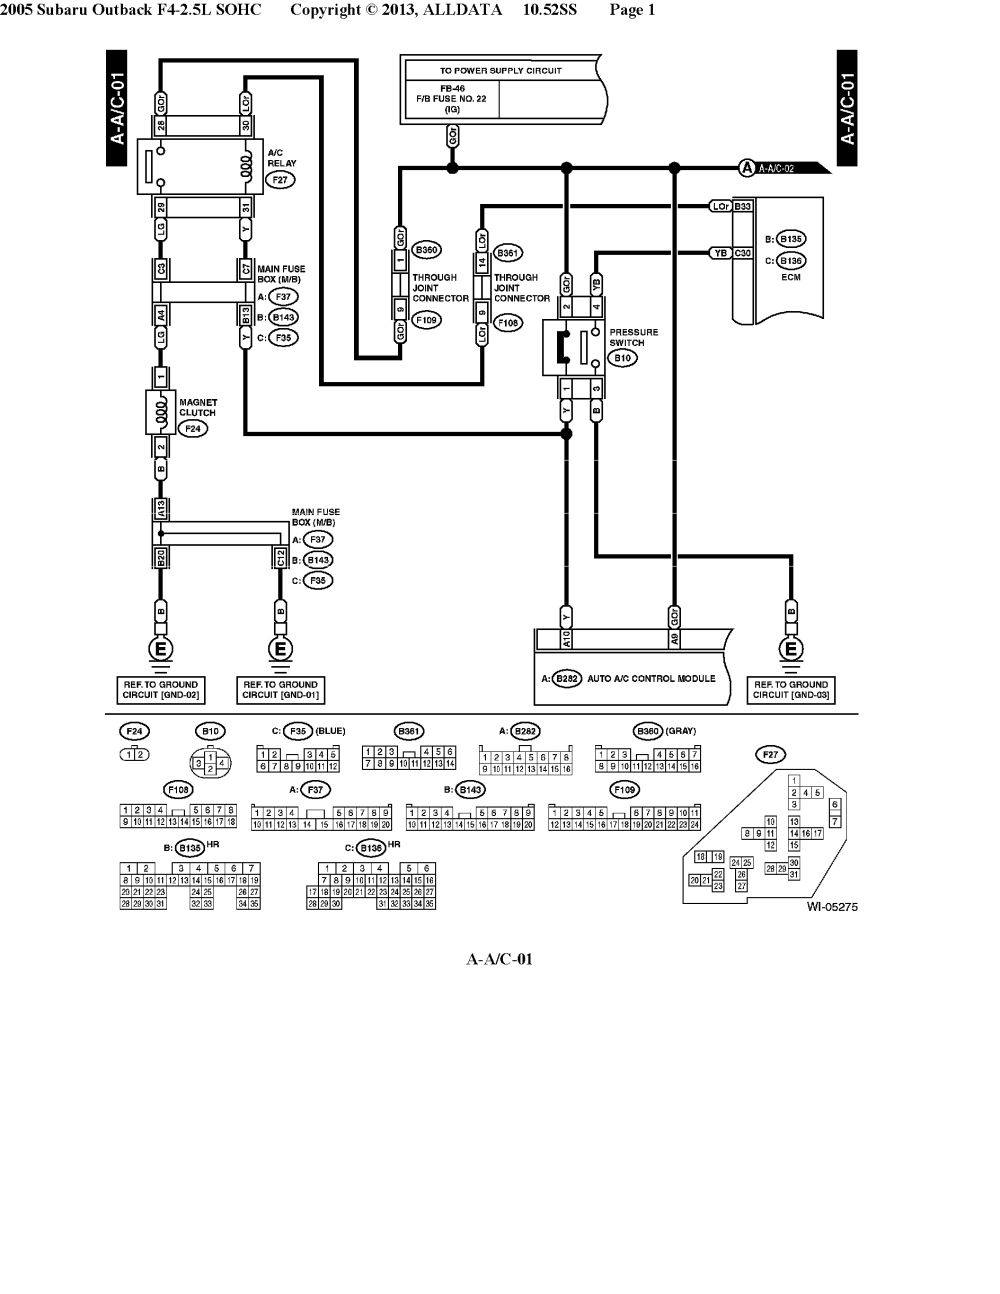 medium resolution of electrical wiring diagrams 2003 subara outback ll bean my wiring mix 05 u0027 h6 a c subaru h6 wiring diagram